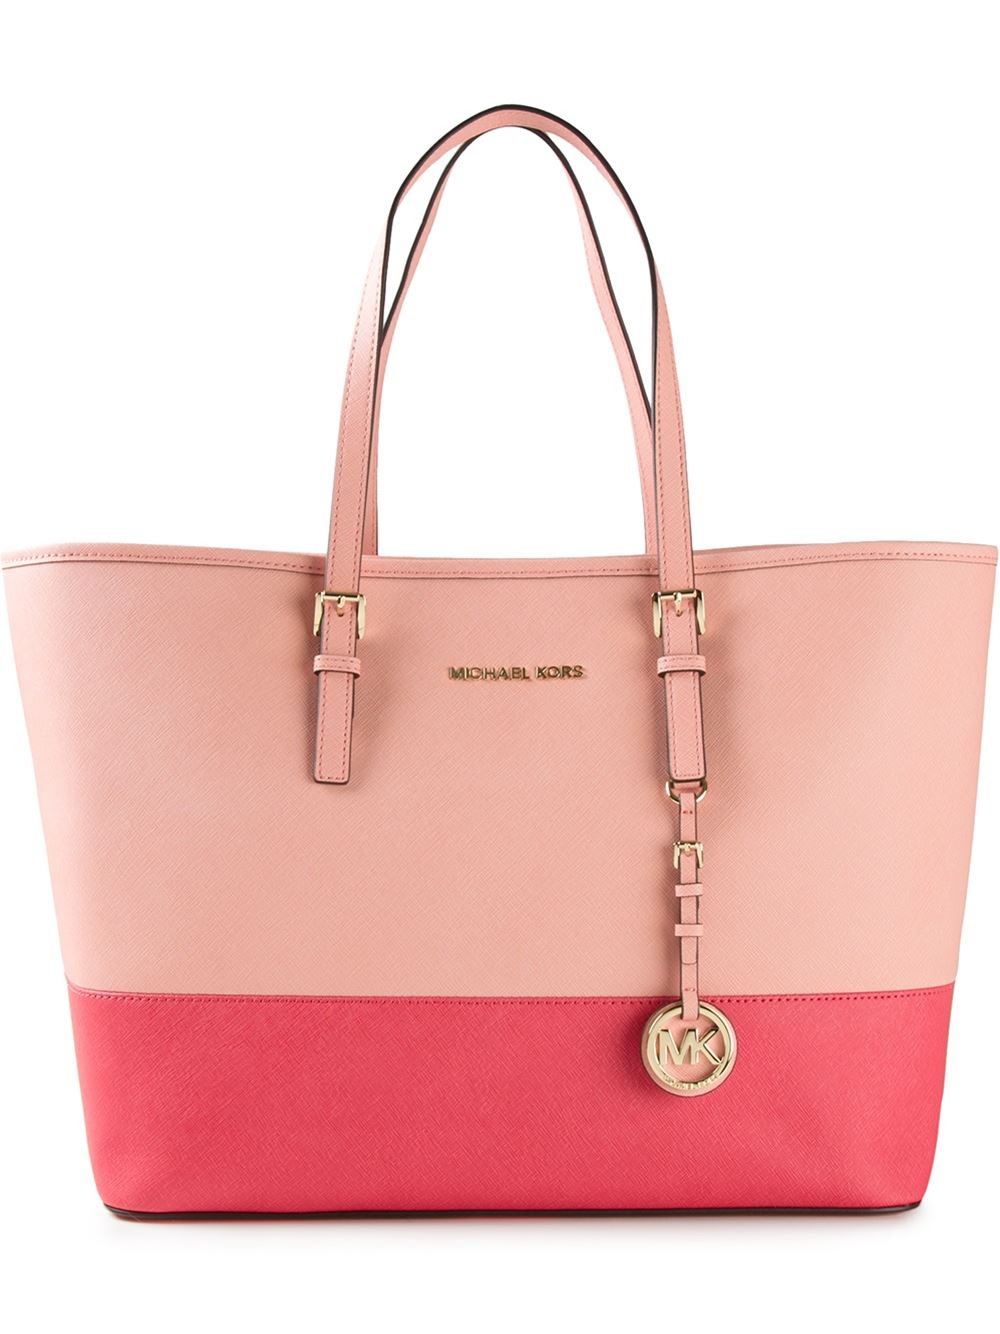 michael michael kors jet set travel color blocked tote in pink pink purple lyst. Black Bedroom Furniture Sets. Home Design Ideas